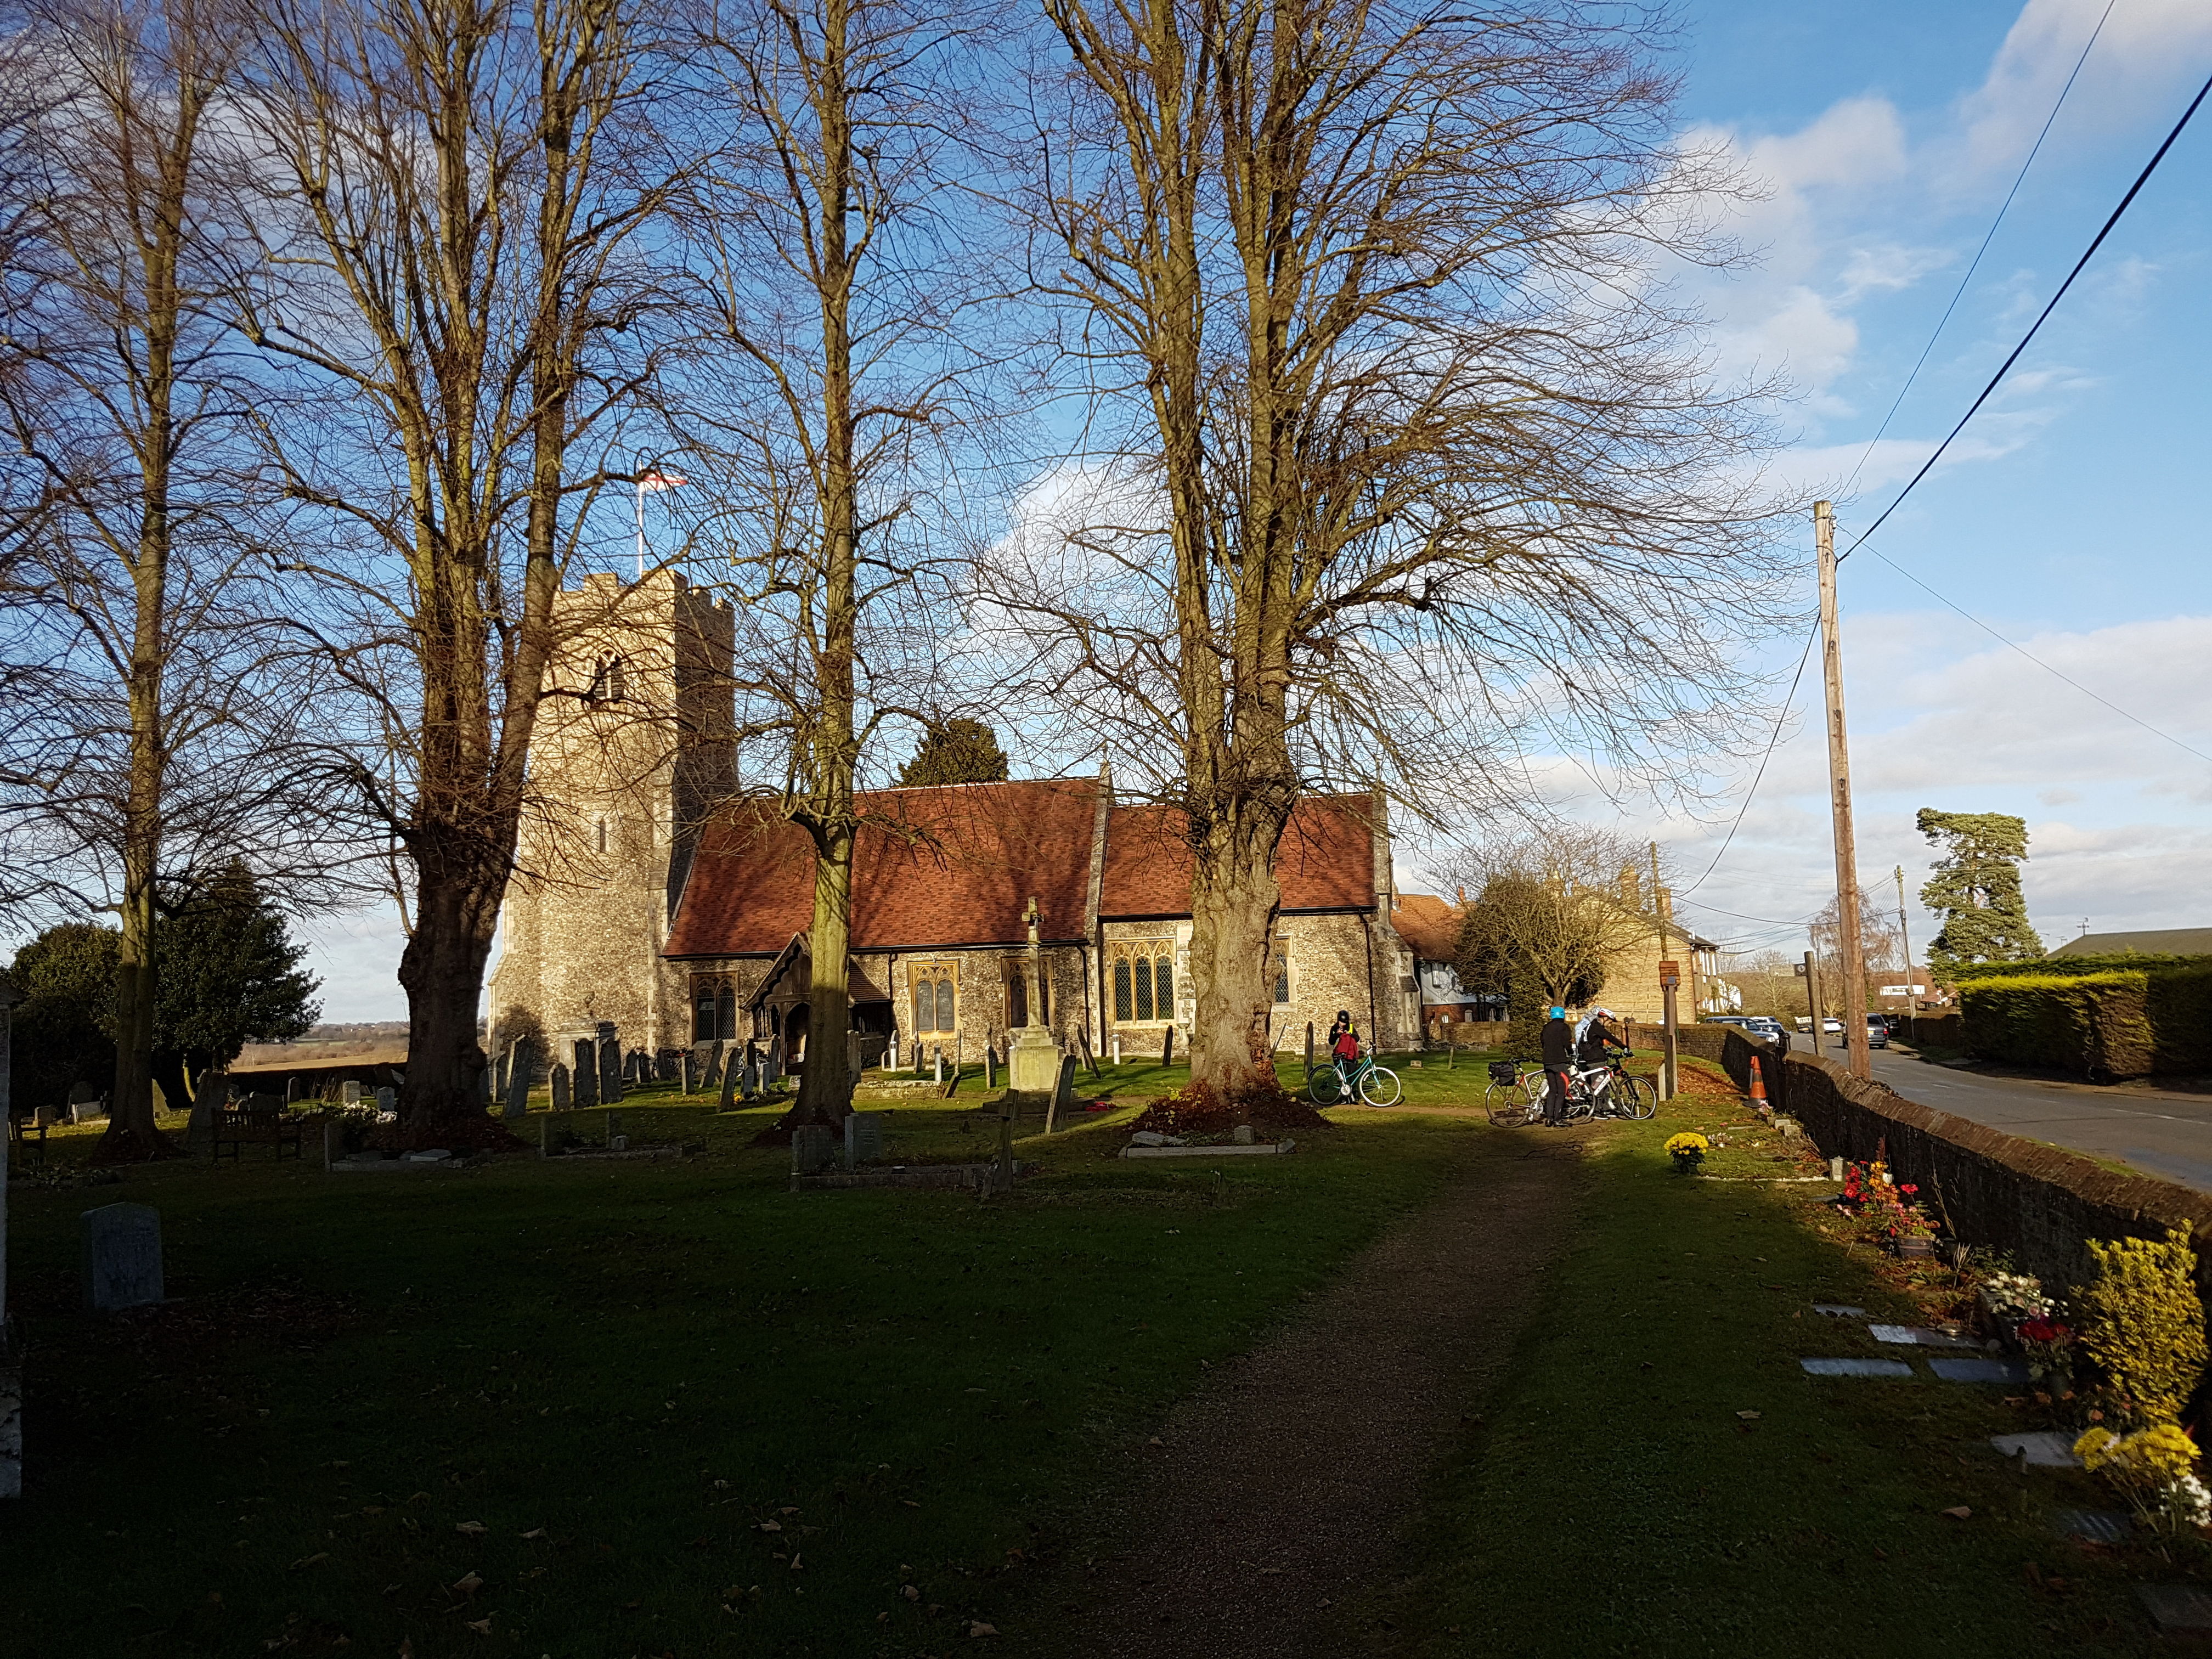 Saturday Cycle ride in Essex villages